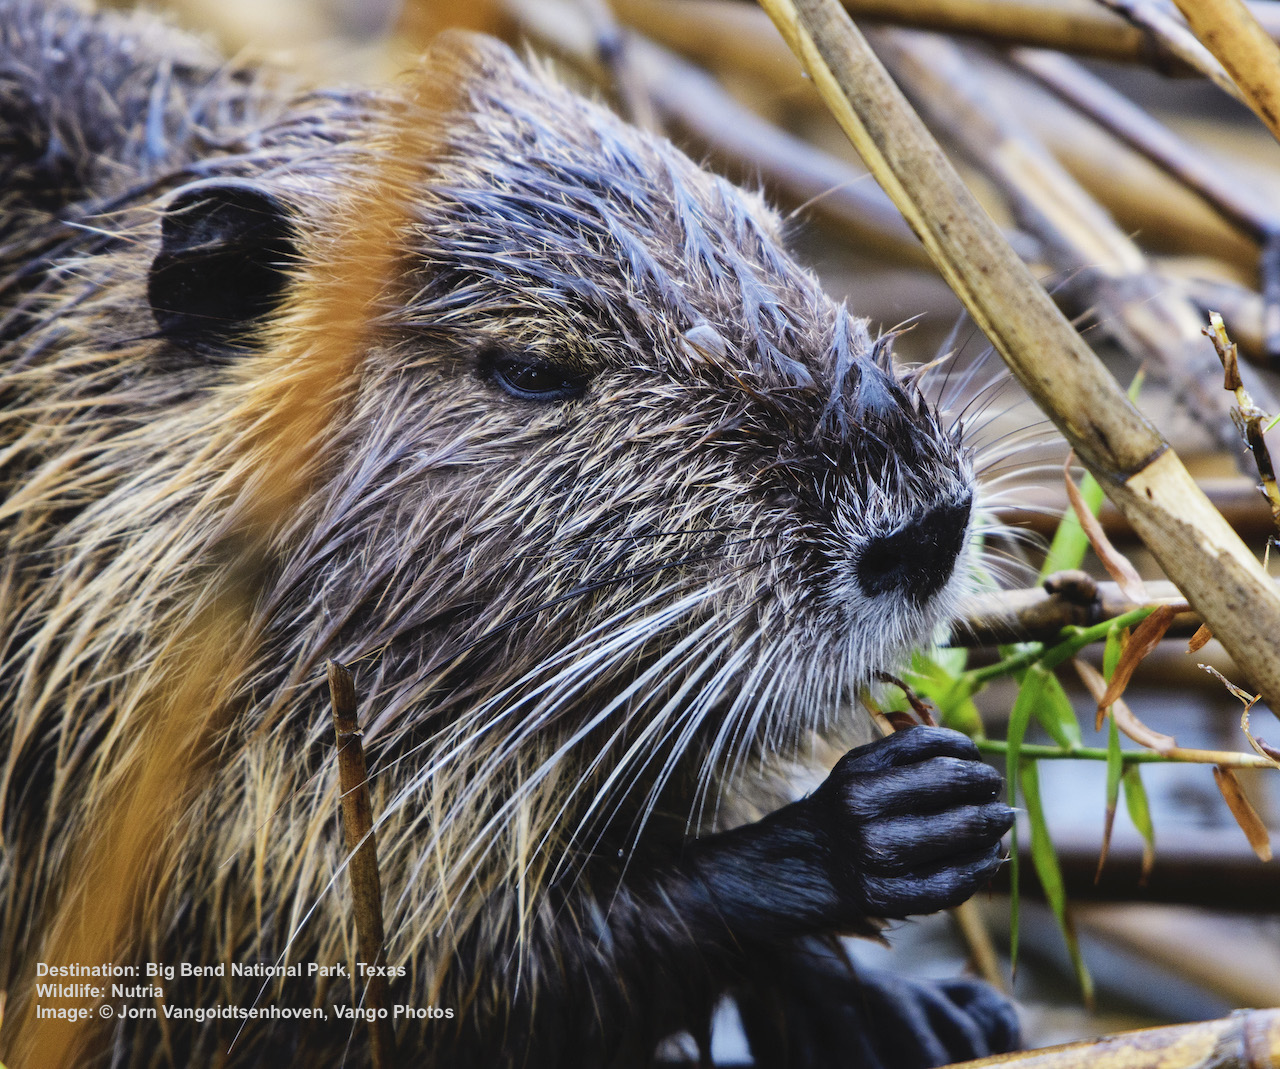 NUTRIA ARE SMALLER THAN BEAVERS AND HAVE A LONG SKINNY, NOT FLAT, TAIL. THEY EAT VEGETATION,INCLUDING THE ROOTS, NOT BARK. Image: © Jorn Vangoidtsenhoven, Vango Photos